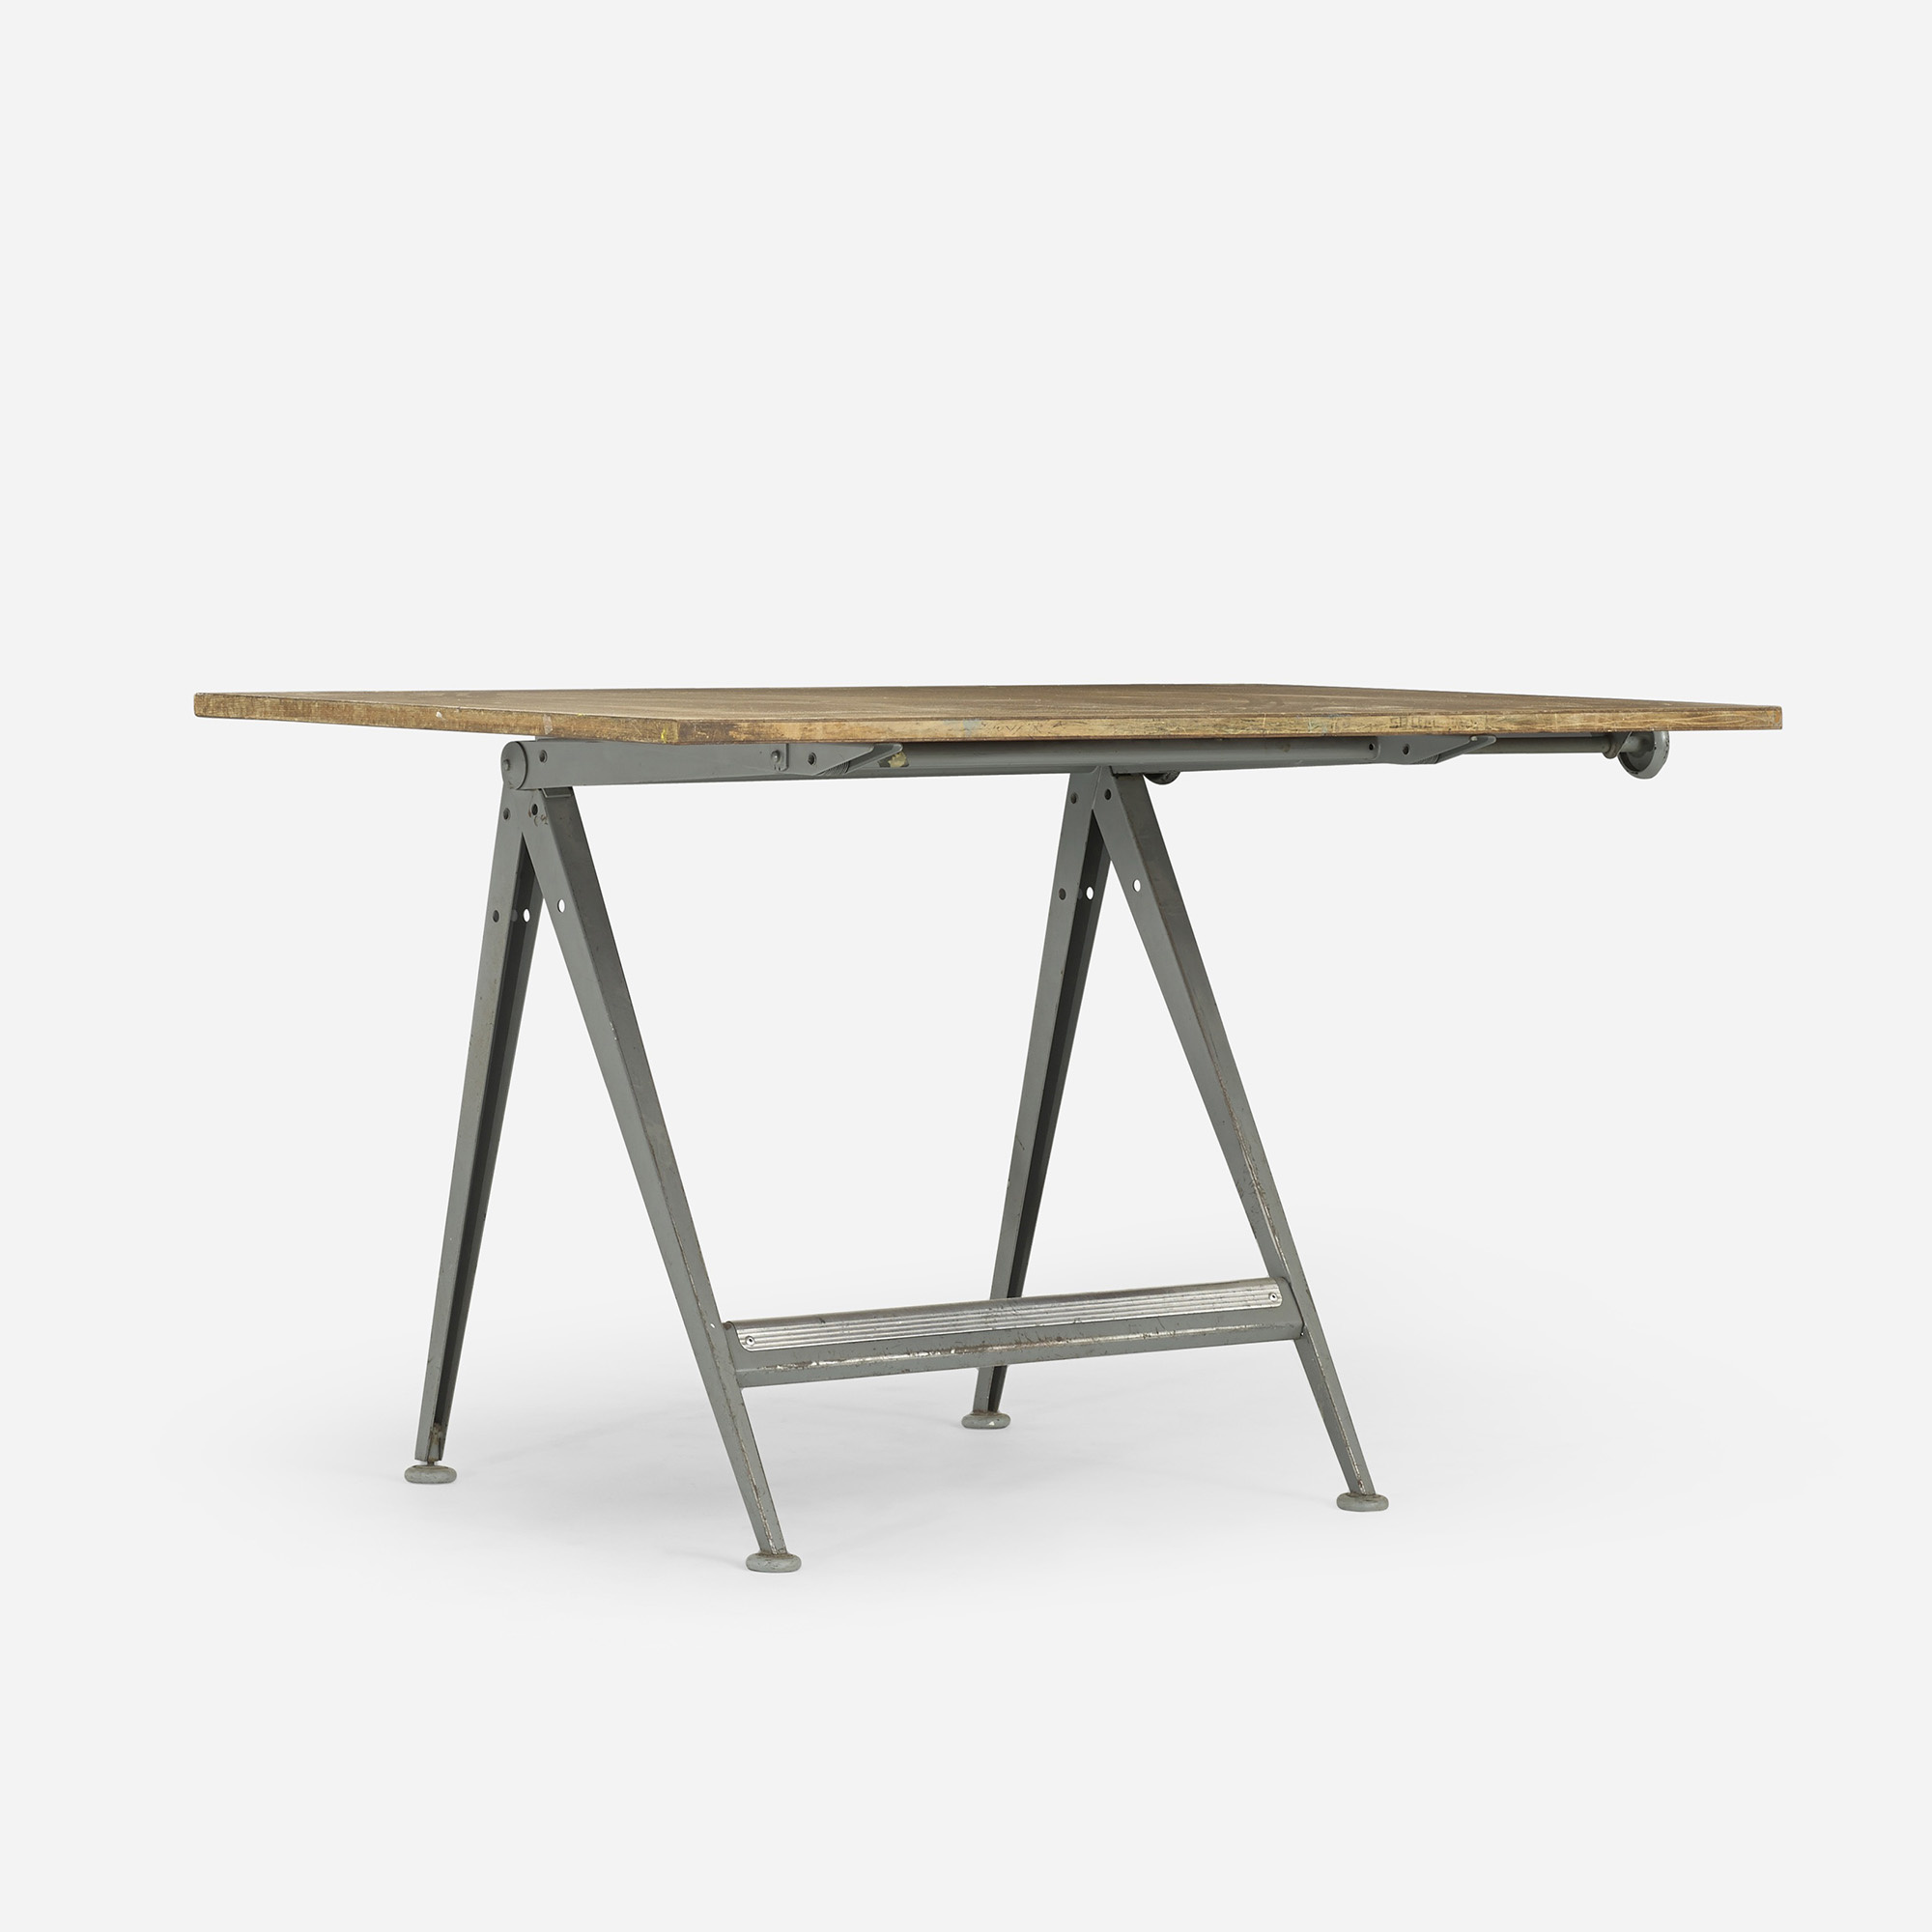 454: Wim Rietveld and Friso Kramer / drafting table (2 of 3)